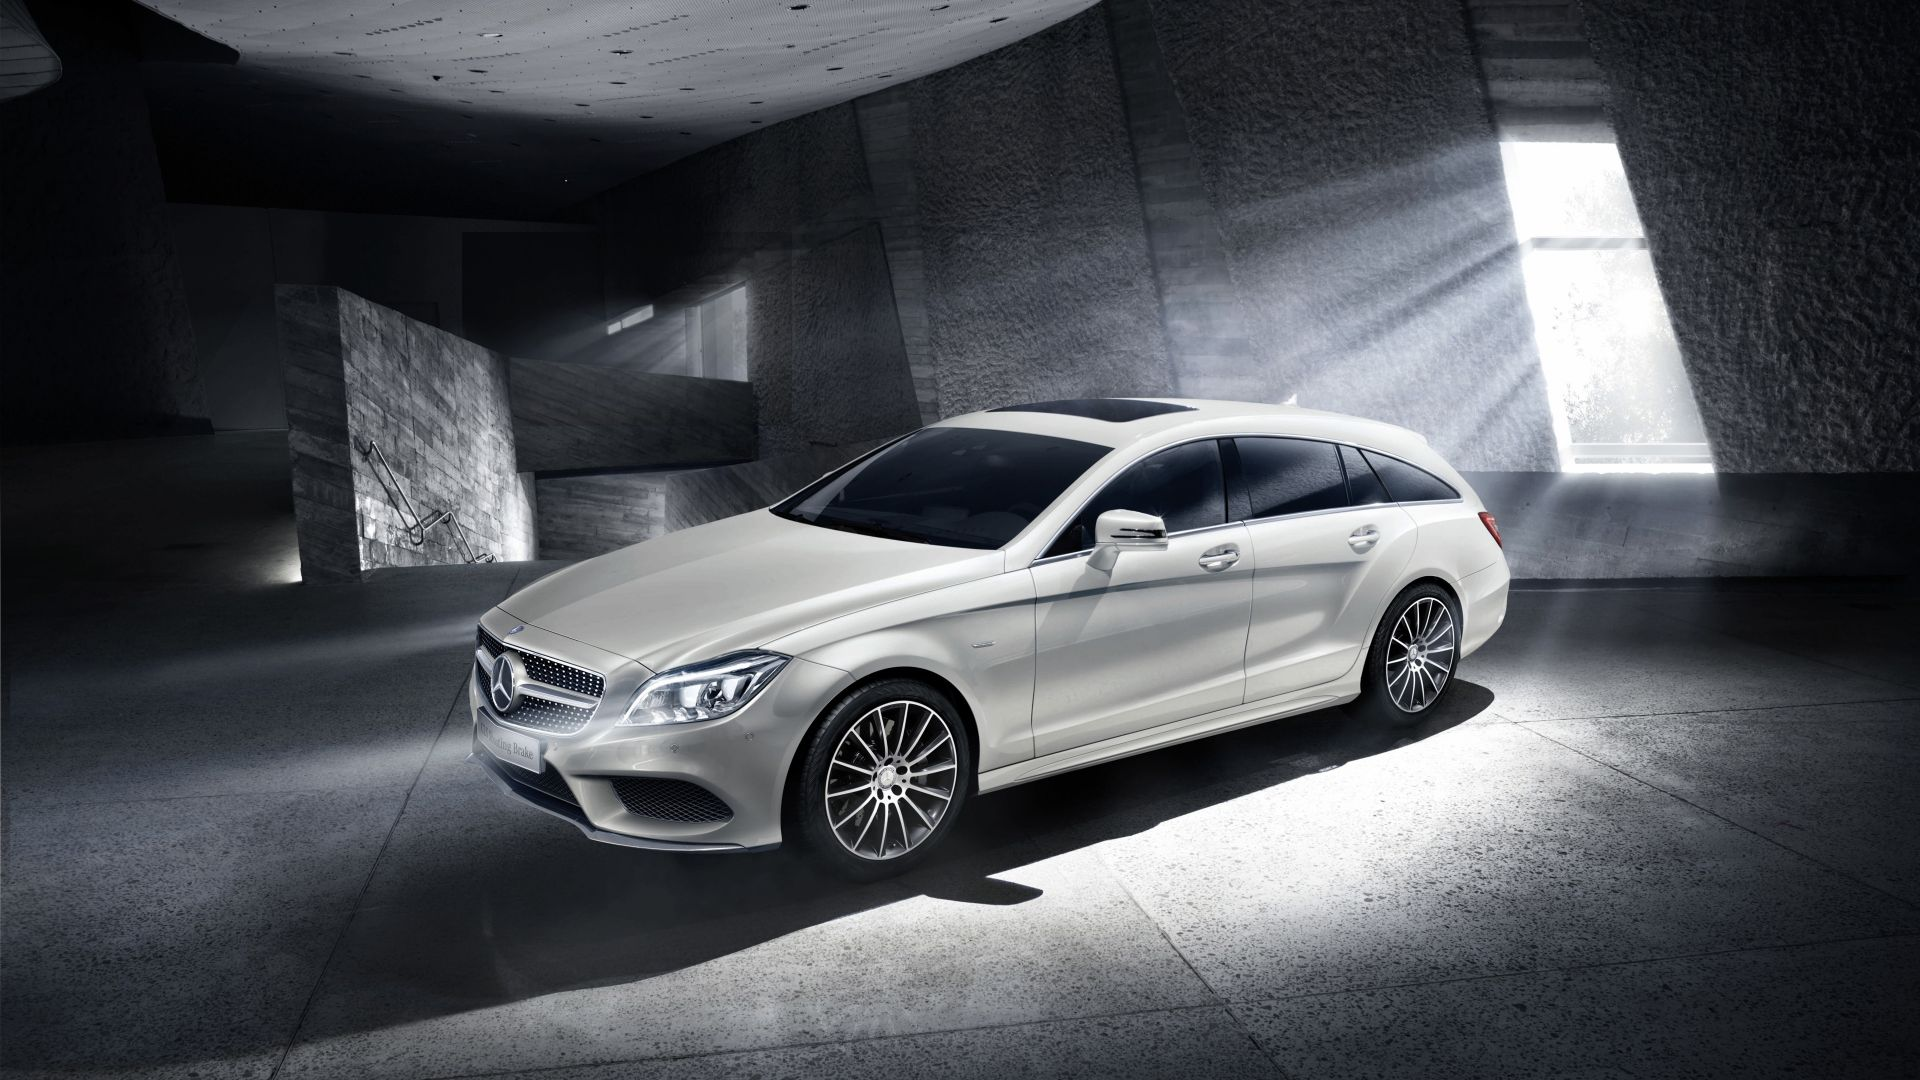 Mercedes-Benz, CLS Klasse, Shooting Brake, Final Edition, luxury cars, white (horizontal)